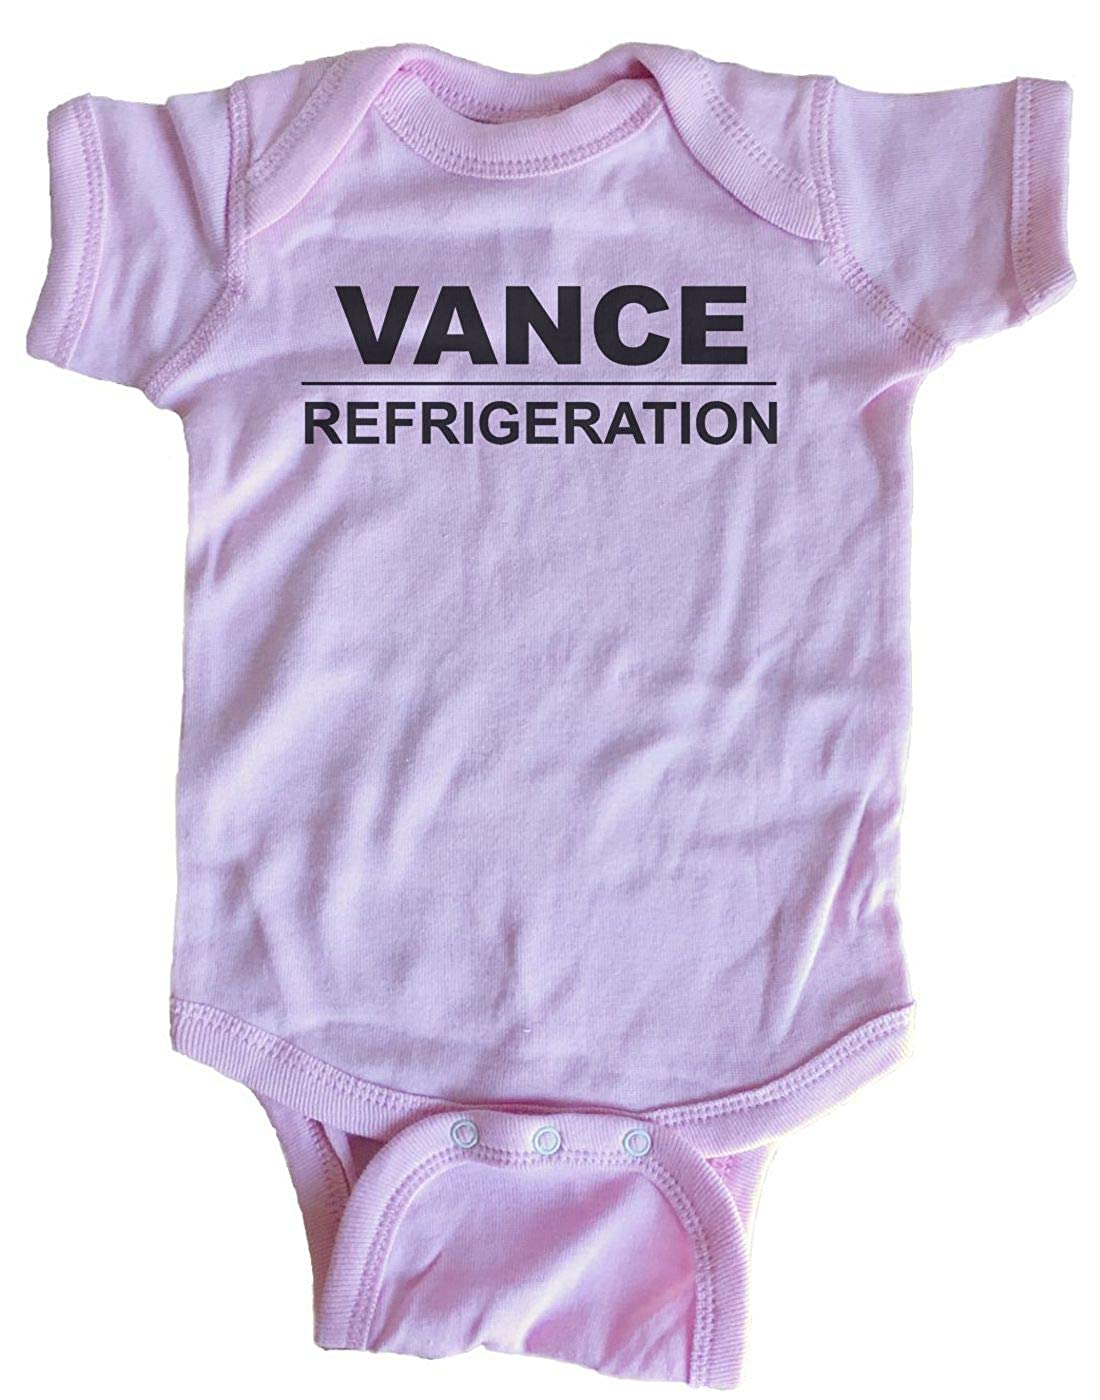 Good Clothes Co Vance Refrigeration The Office Baby One Piece